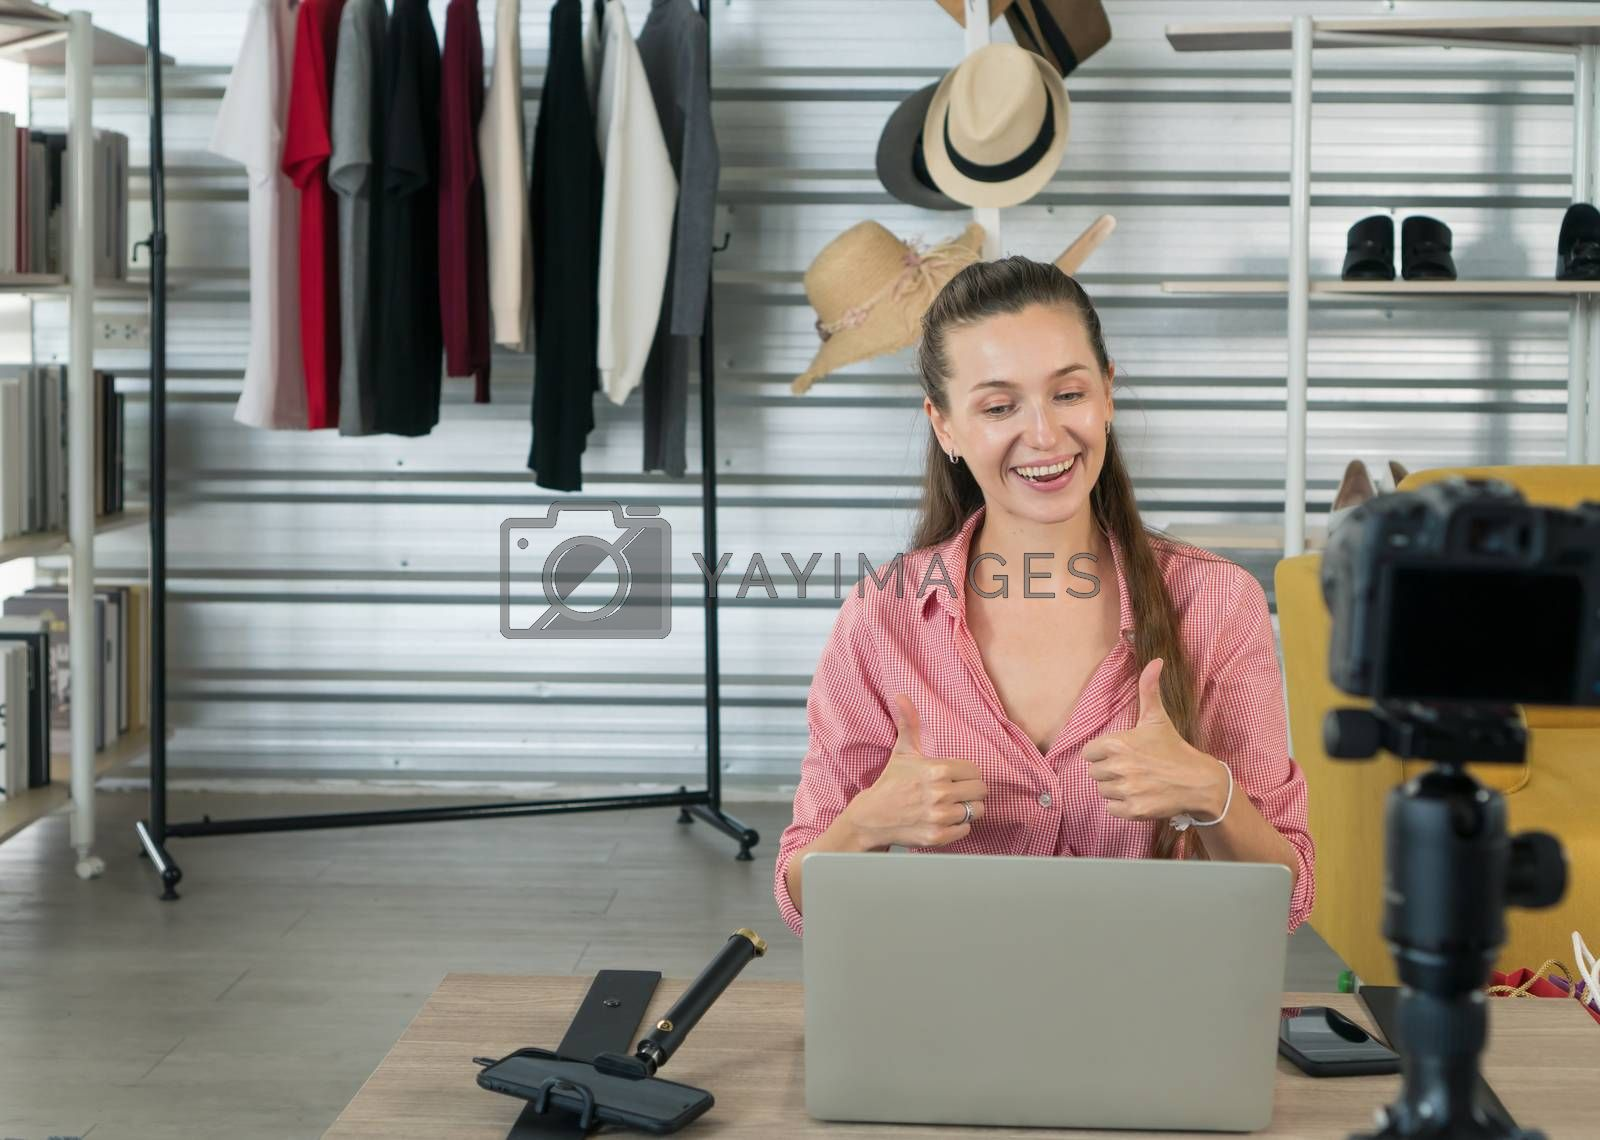 Beautiful Caucasian women are having fun and being happy at work. He is a product reviewer on YouTube.( Mock up books )